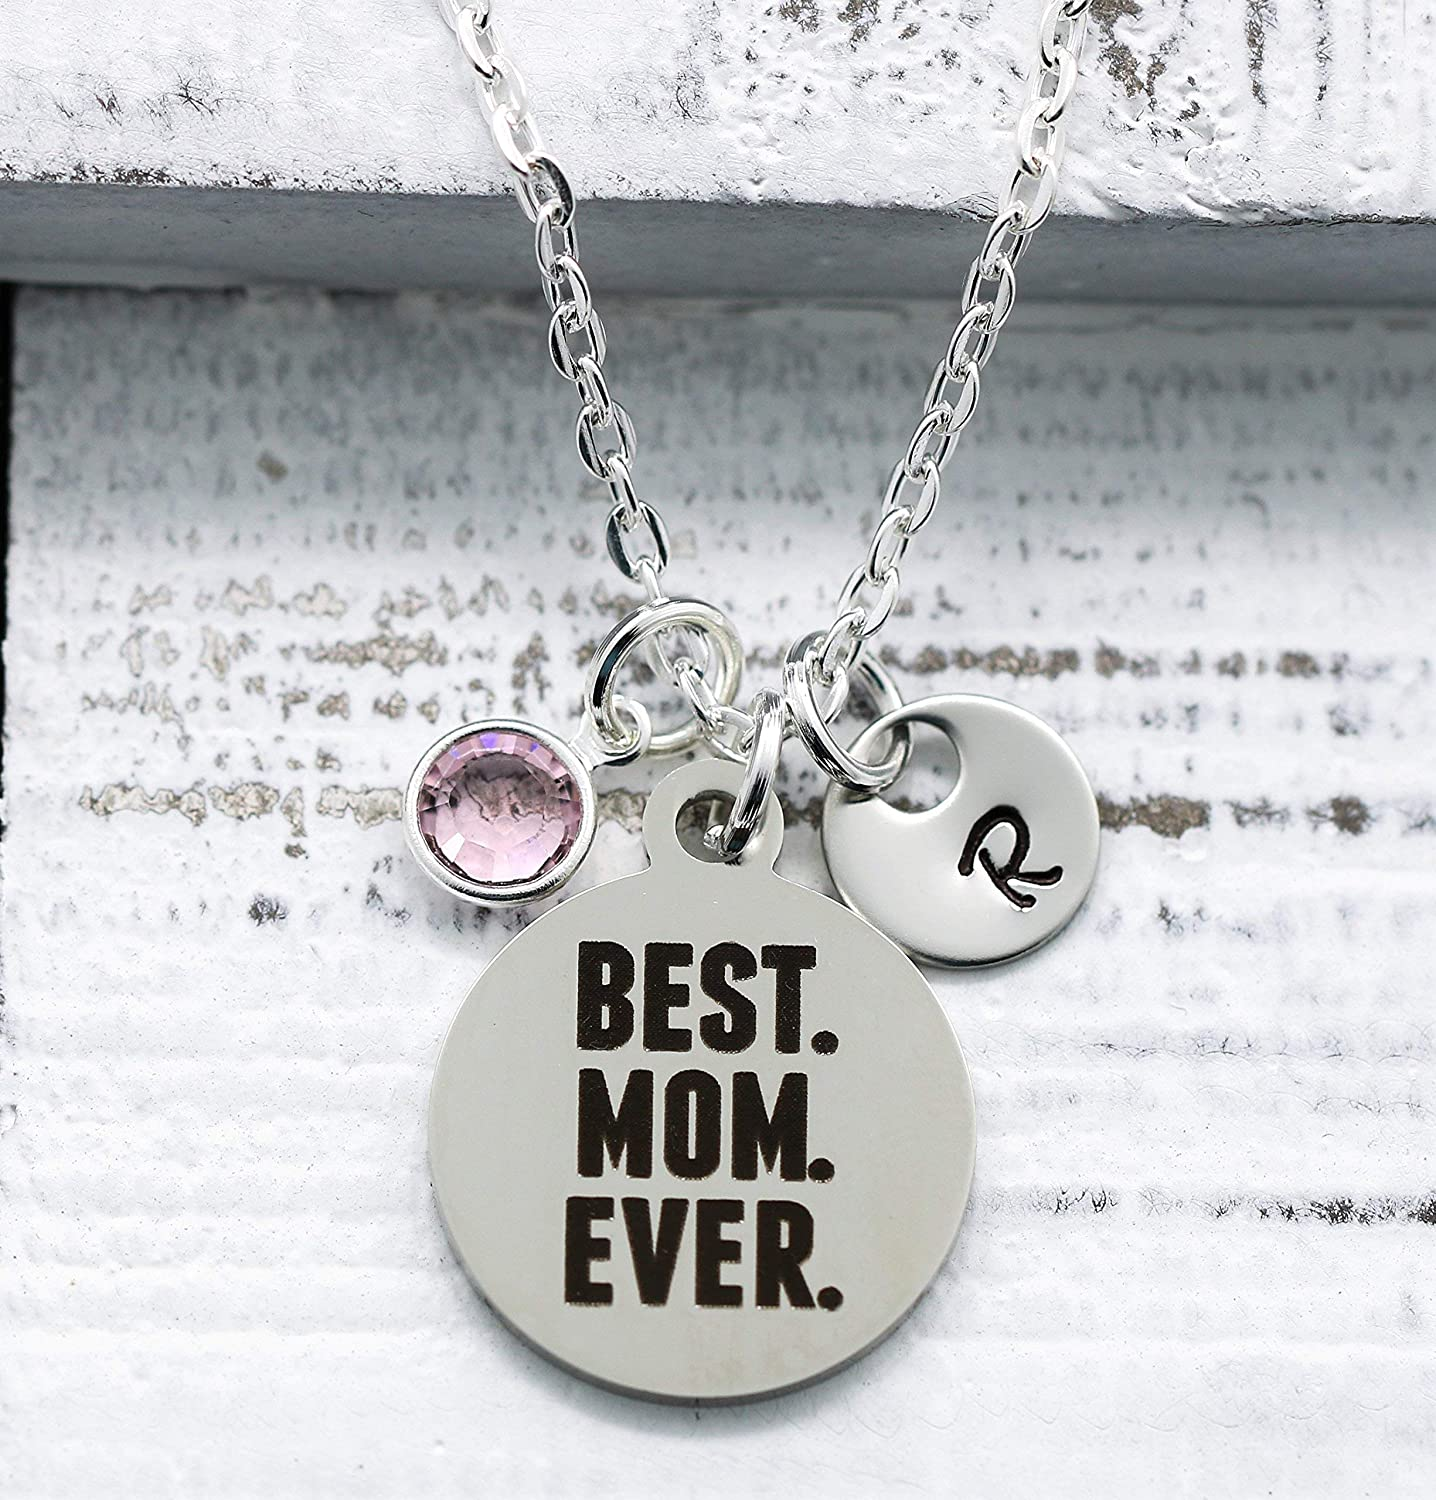 Necklace Gift Mother Gift Gifts Mom Mother Day